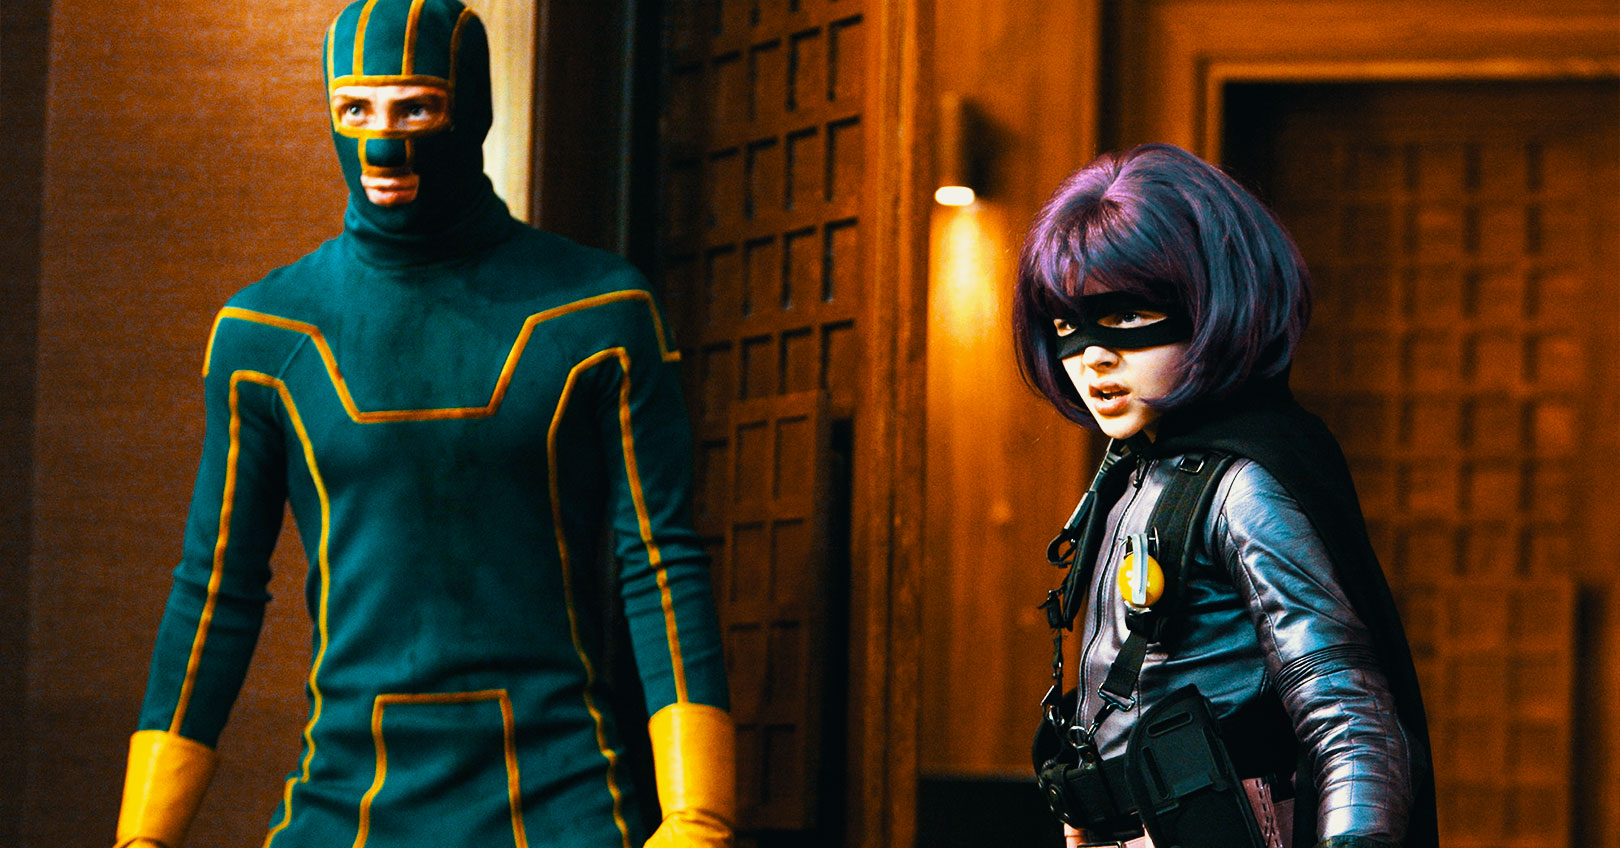 Kick-Ass - Aaron Taylor-Johnson and Chloë Grace Moretz